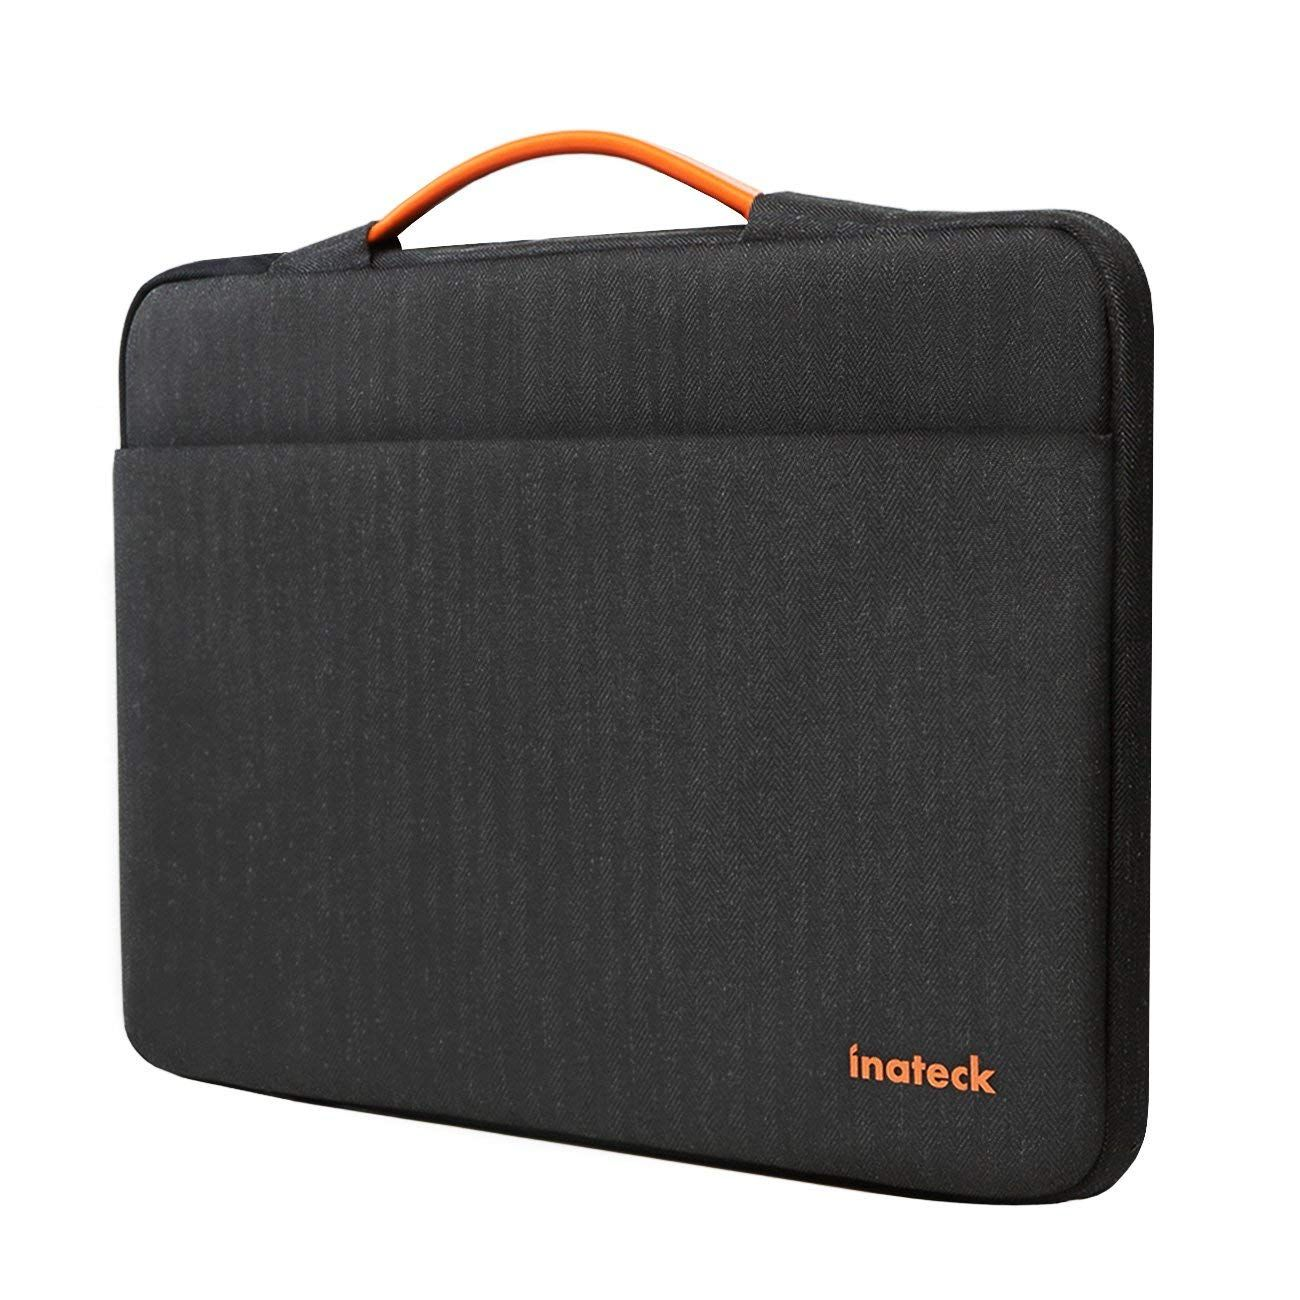 Inateck 12.3-13.3 Inch Sleeve Case LB1302S, black